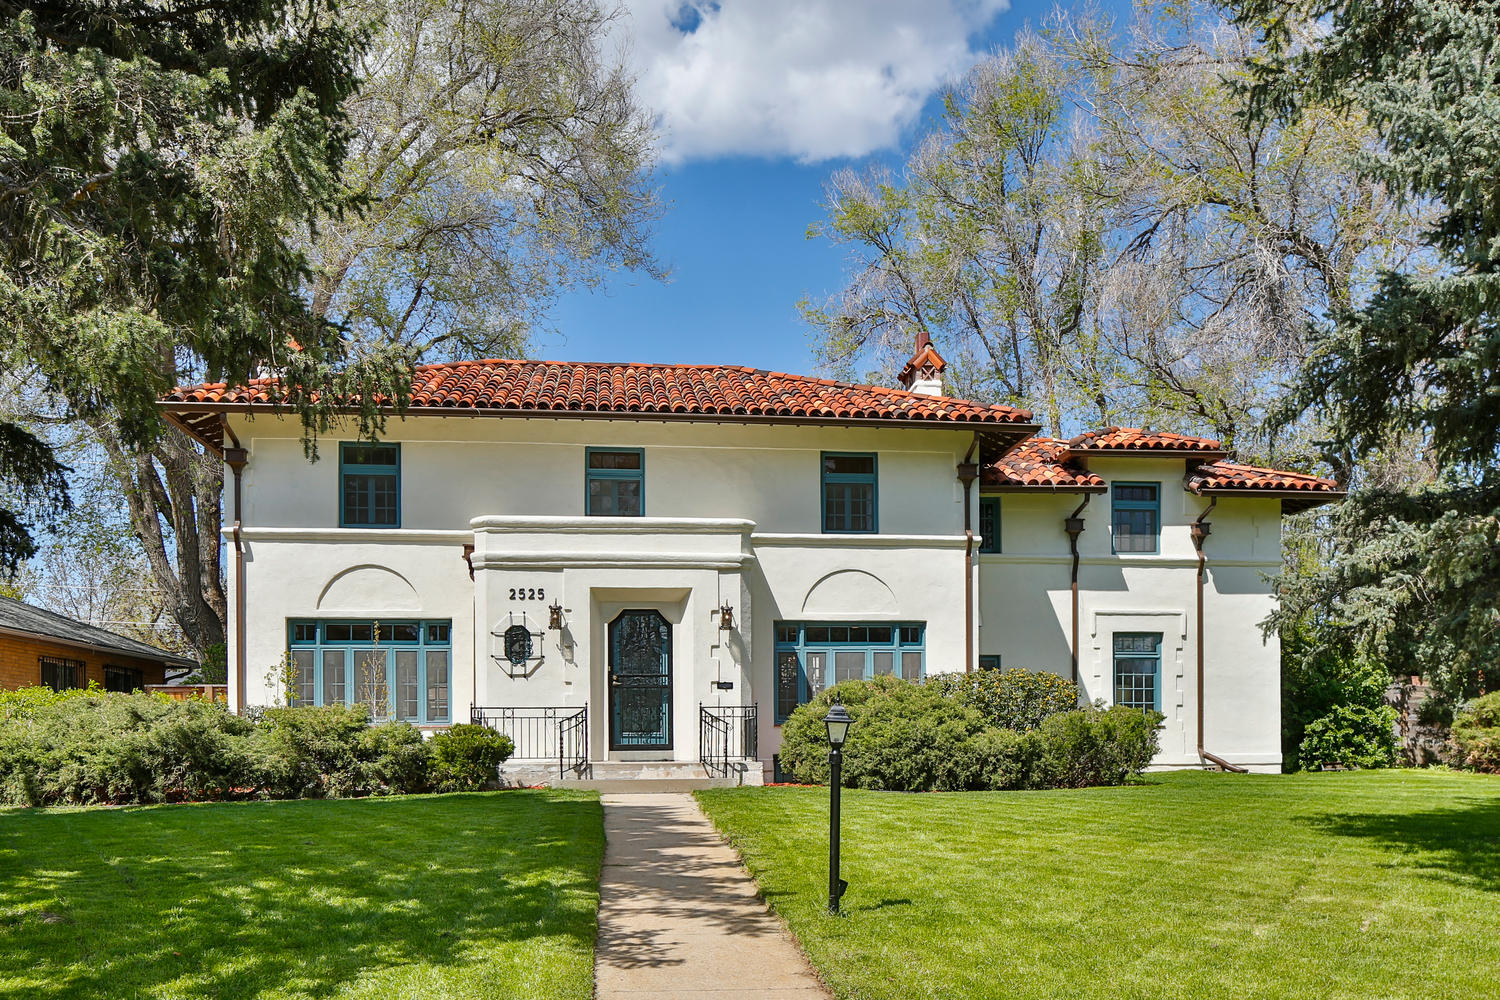 Single Family Home for Sale at Lovely Spanish home 2525 Monaco Parkway Denver, Colorado, 80207 United States